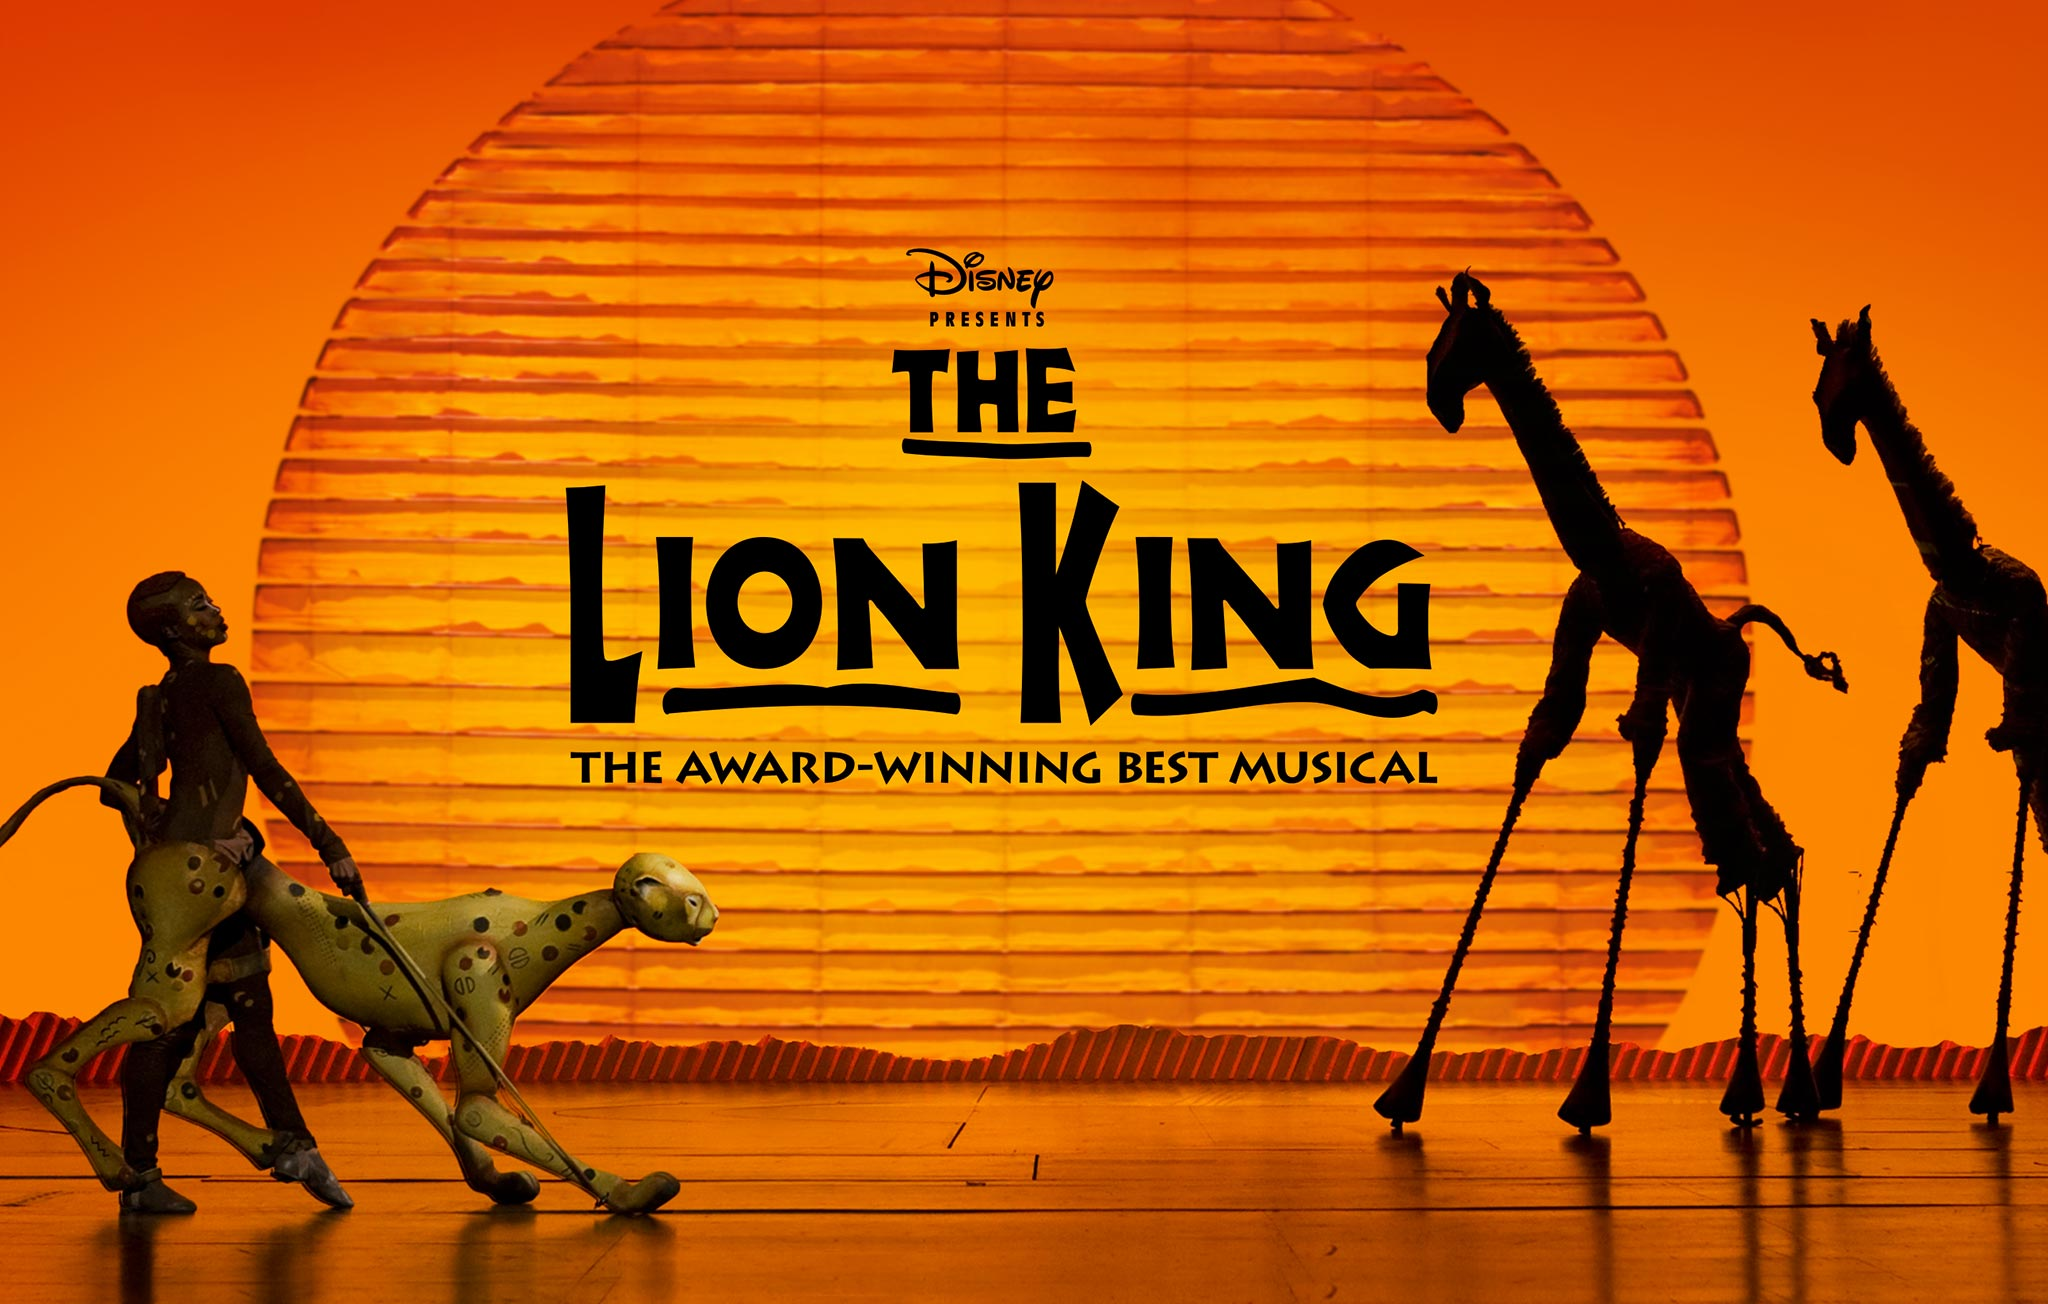 Full Steam Ahead on Lion King Puppet Production